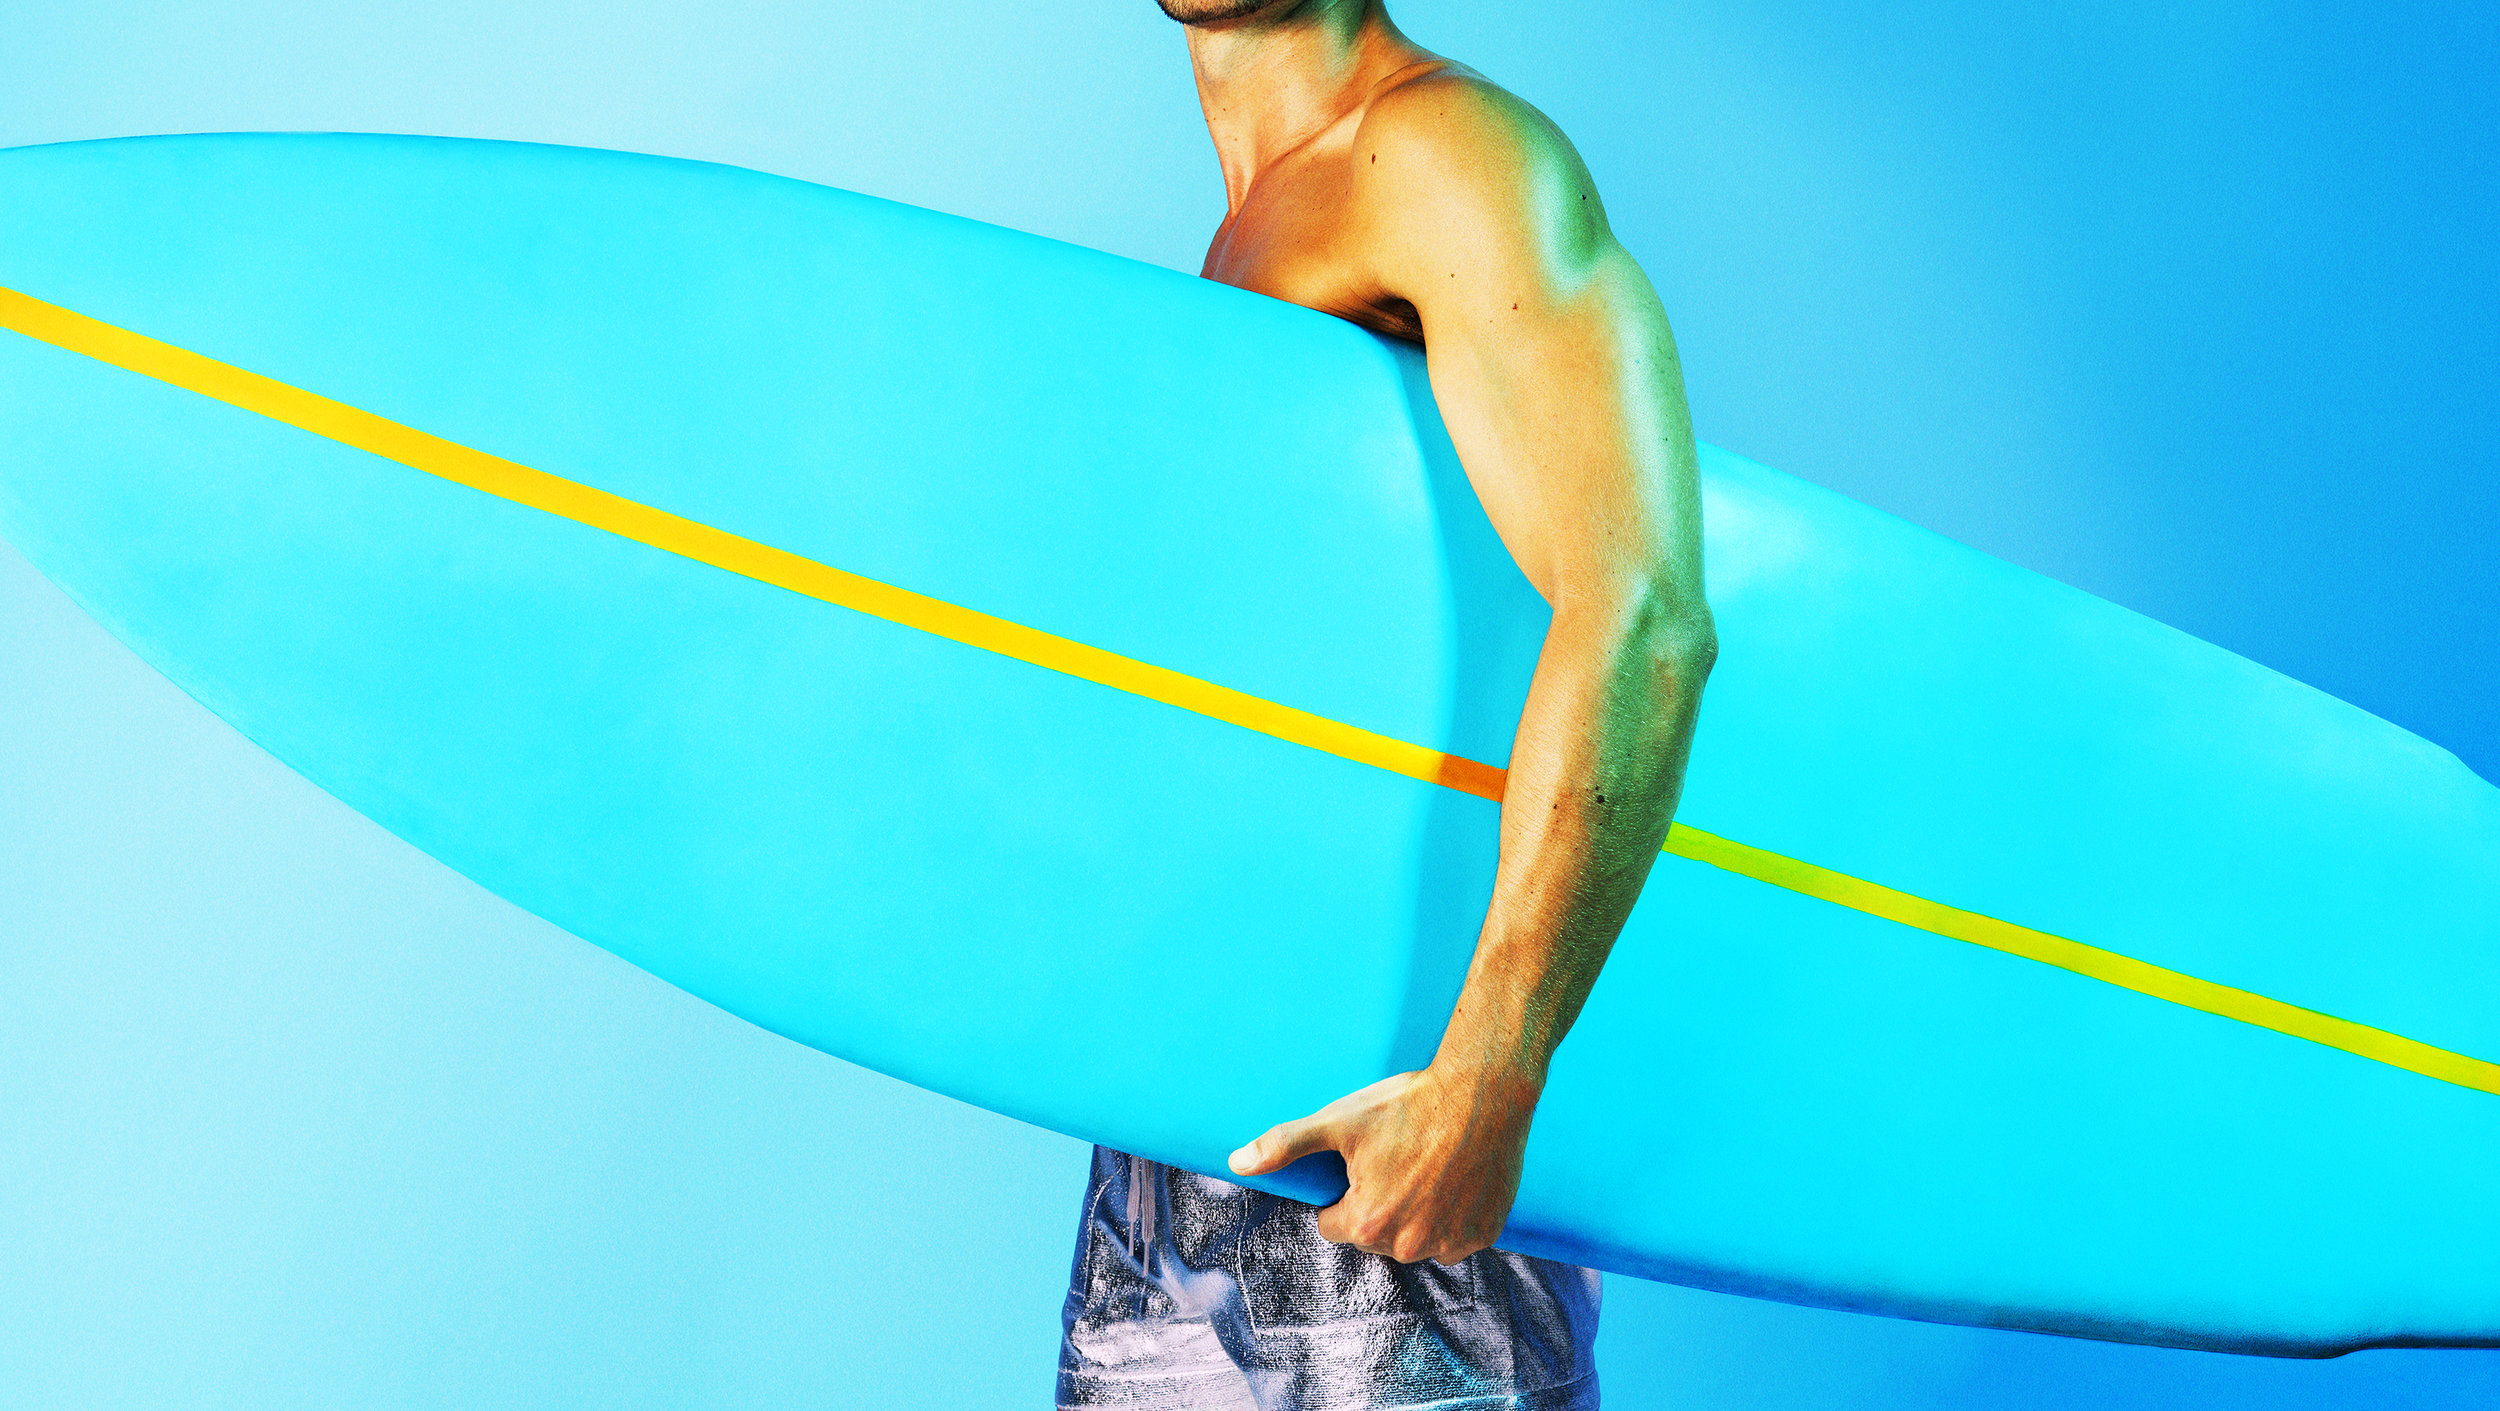 03_Escapes_Surfboard_005.jpg